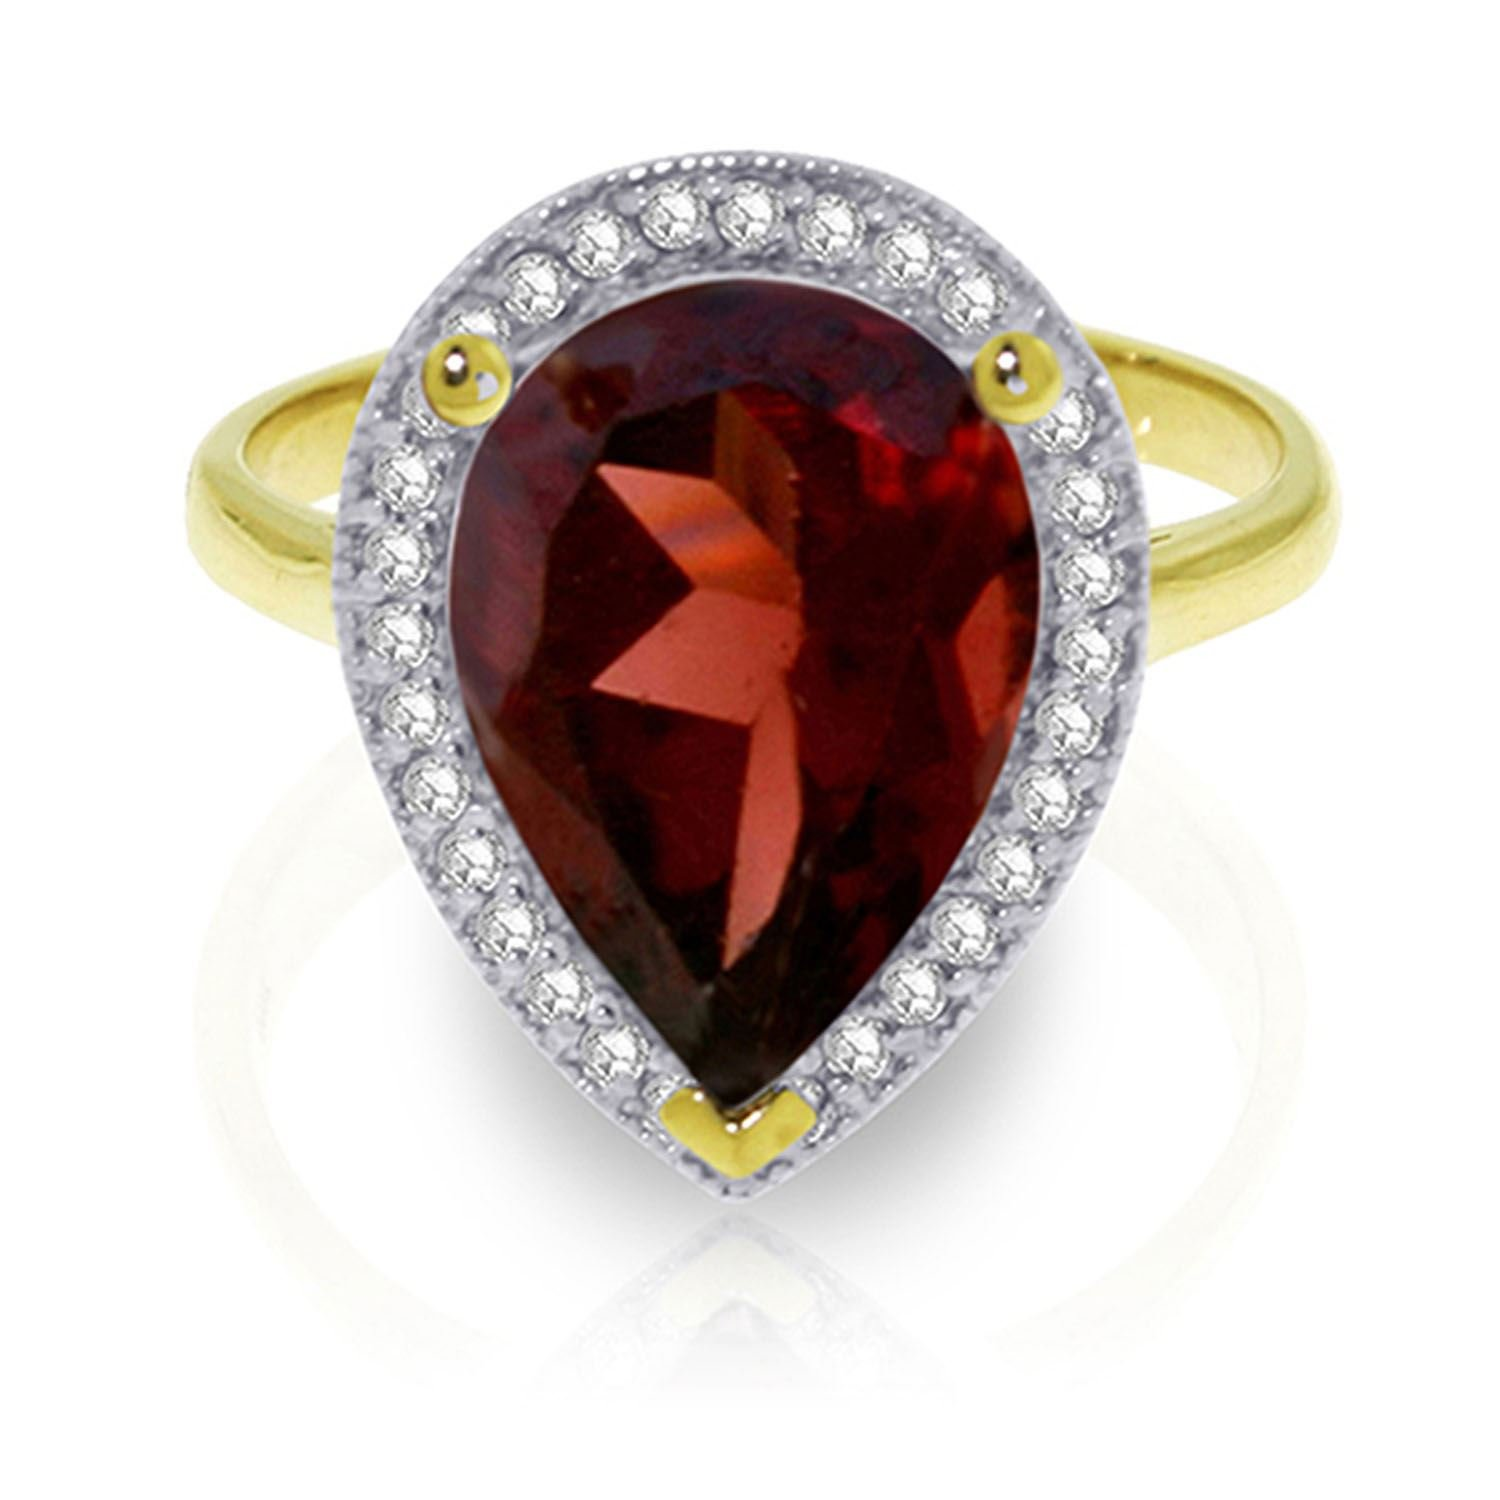 ALARRI 4.06 Carat 14K Solid Gold Shade Of Love Garnet Diamond Ring With Ring Size 8 by ALARRI (Image #1)